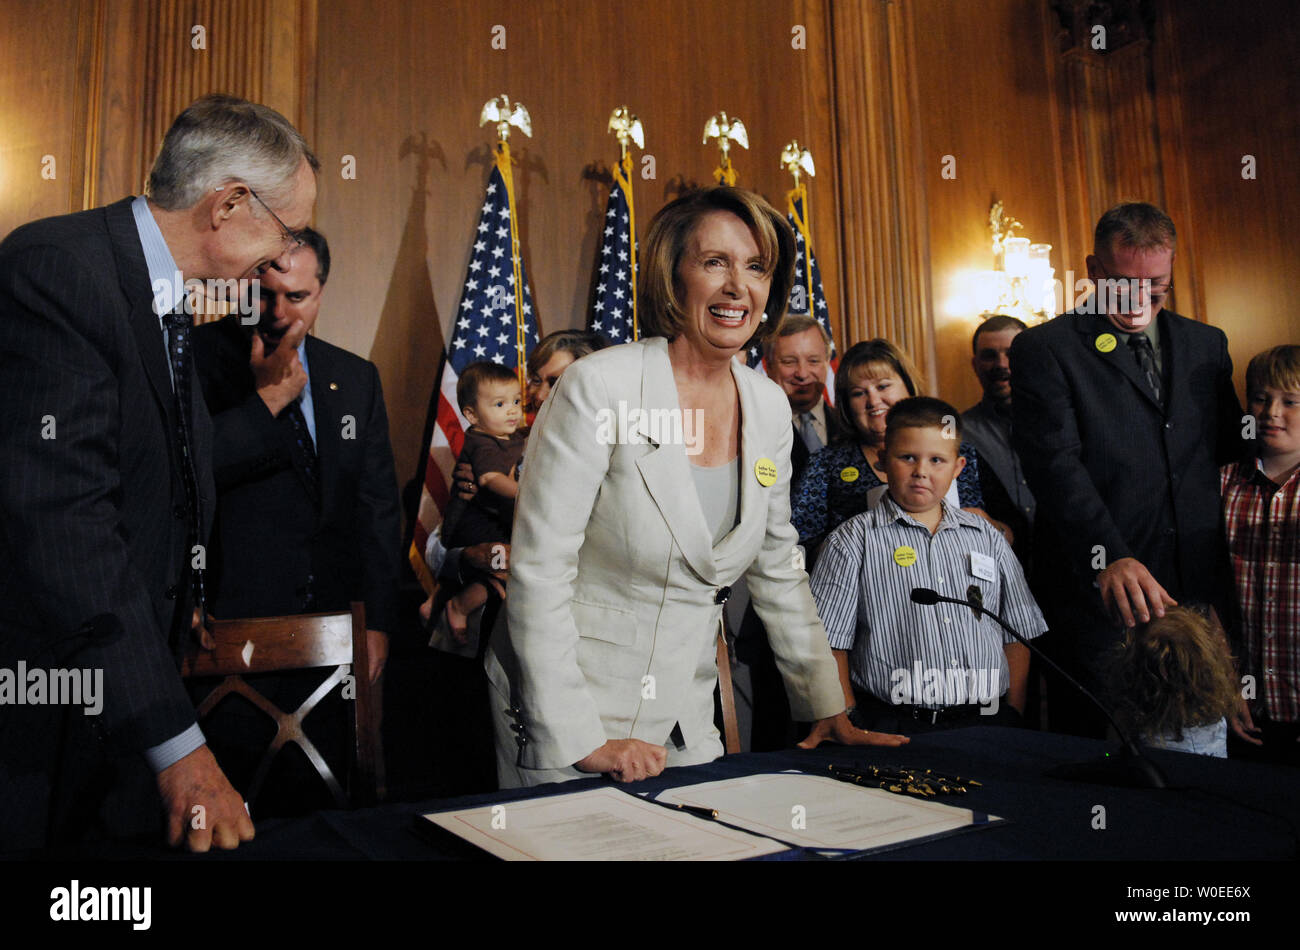 Speaker of the House Nancy Pelosi (D-CA) (C) and Senate Majority Leader Harry Reid (D-NV) (L) stand after signing a bill to reform the Consumer Product Safety Commission on Capitol Hill in Washington on August 1, 2008.  (UPI Photo/Alexis C. Glenn) Stock Photo